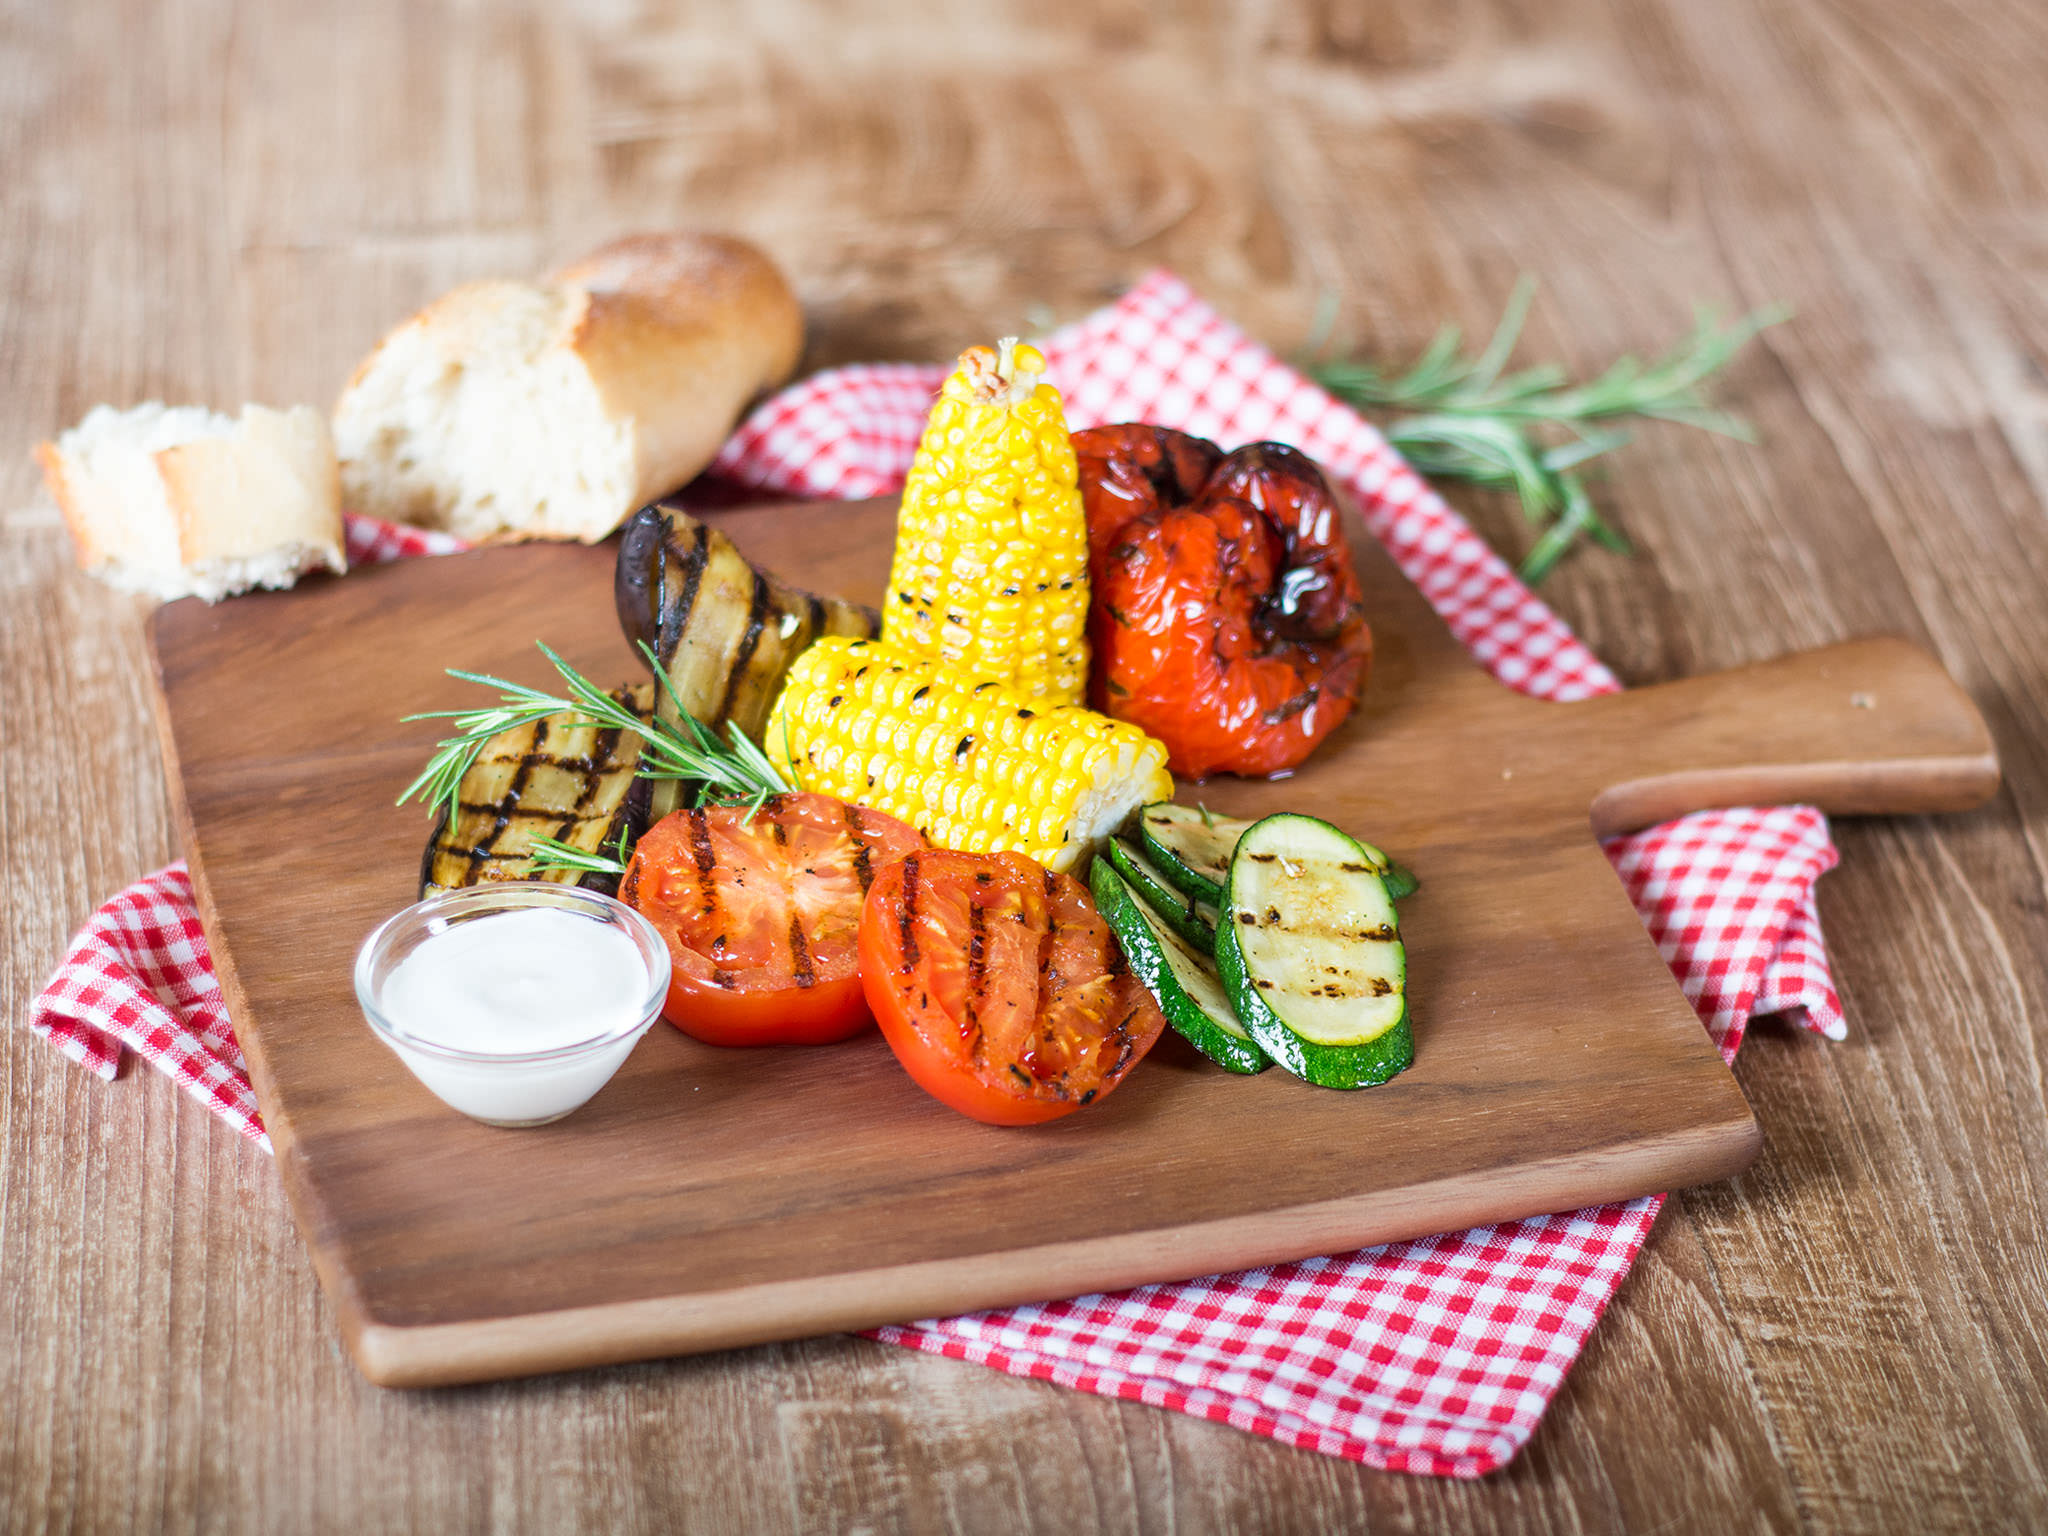 Grilled Vegetable Platter Recipe With Video Kitchen Stories